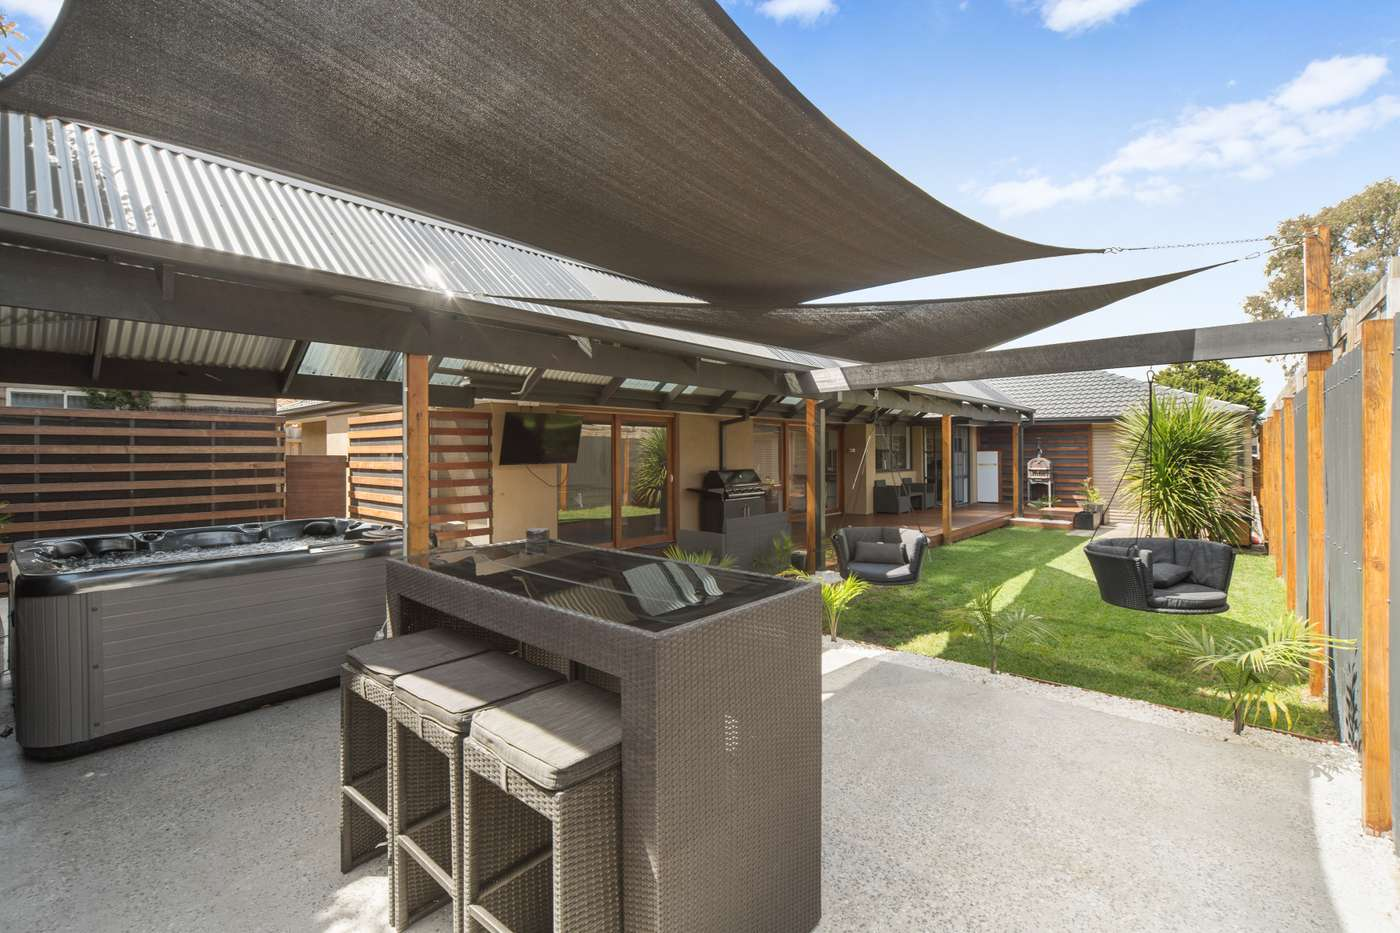 Main view of Homely house listing, 11 Hellenic Court, Carrum Downs, VIC 3201